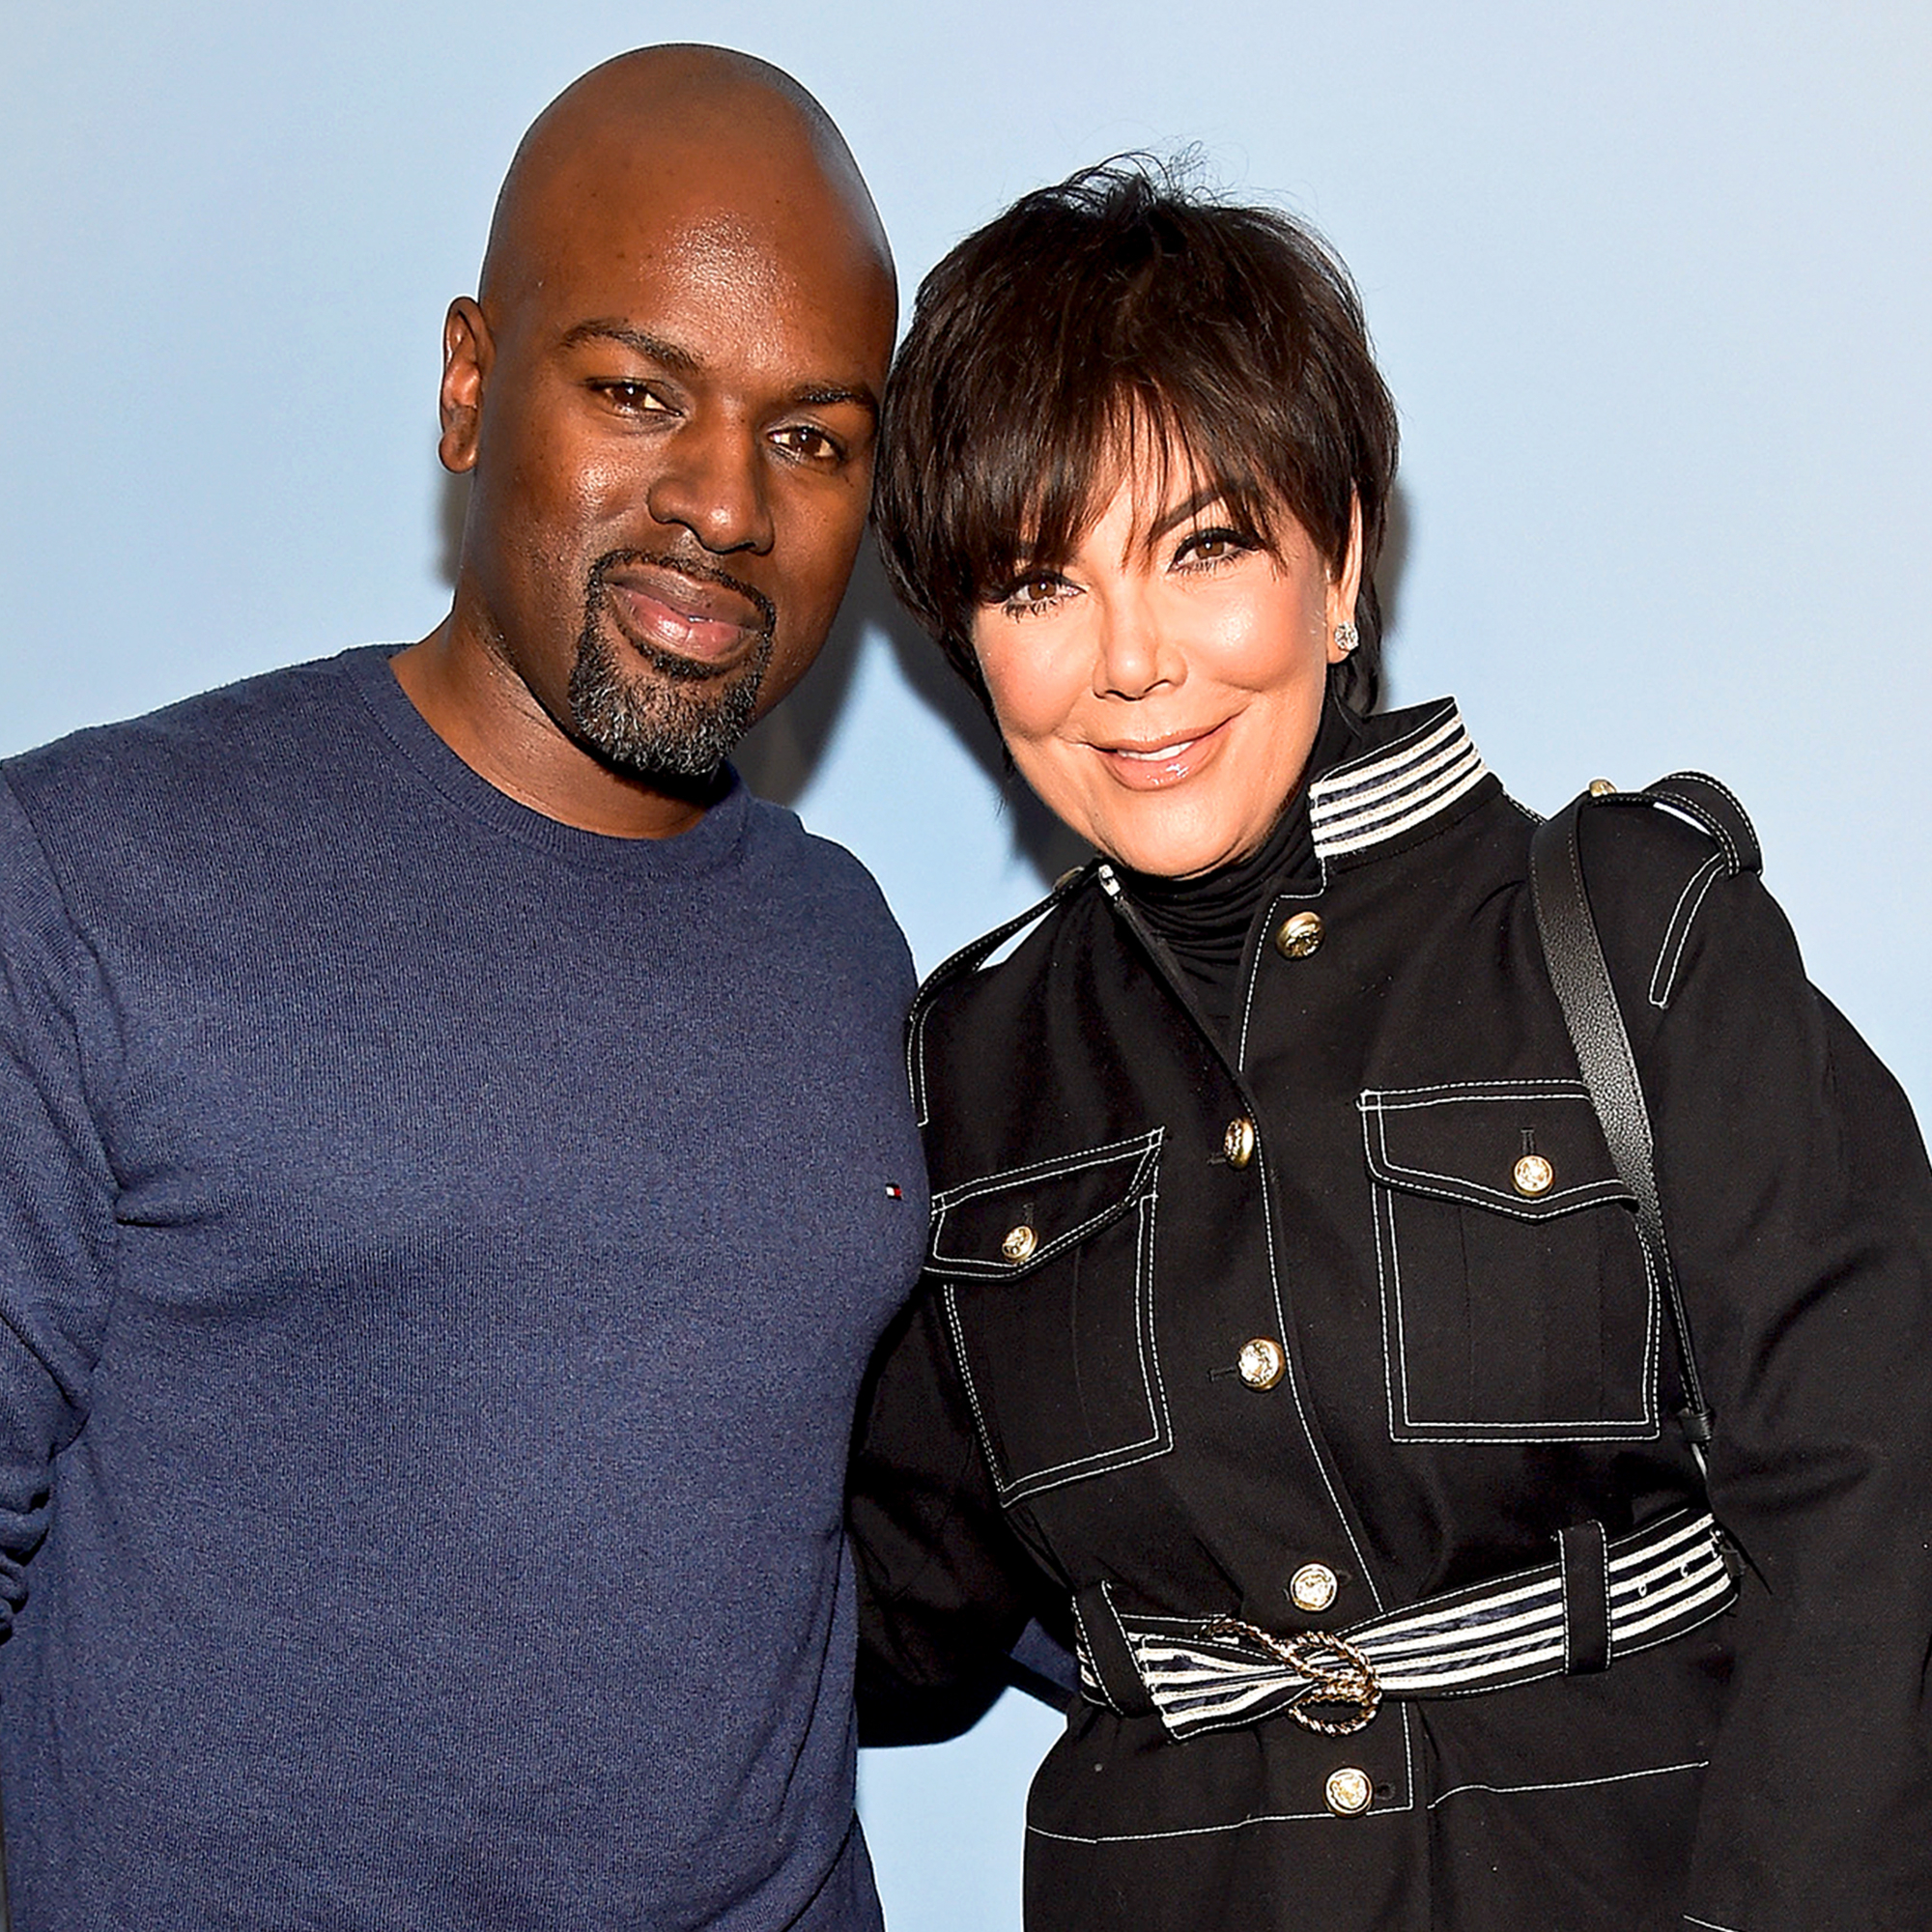 Kris Jenner and Corey Gamble Inside Their 4-Year Romance